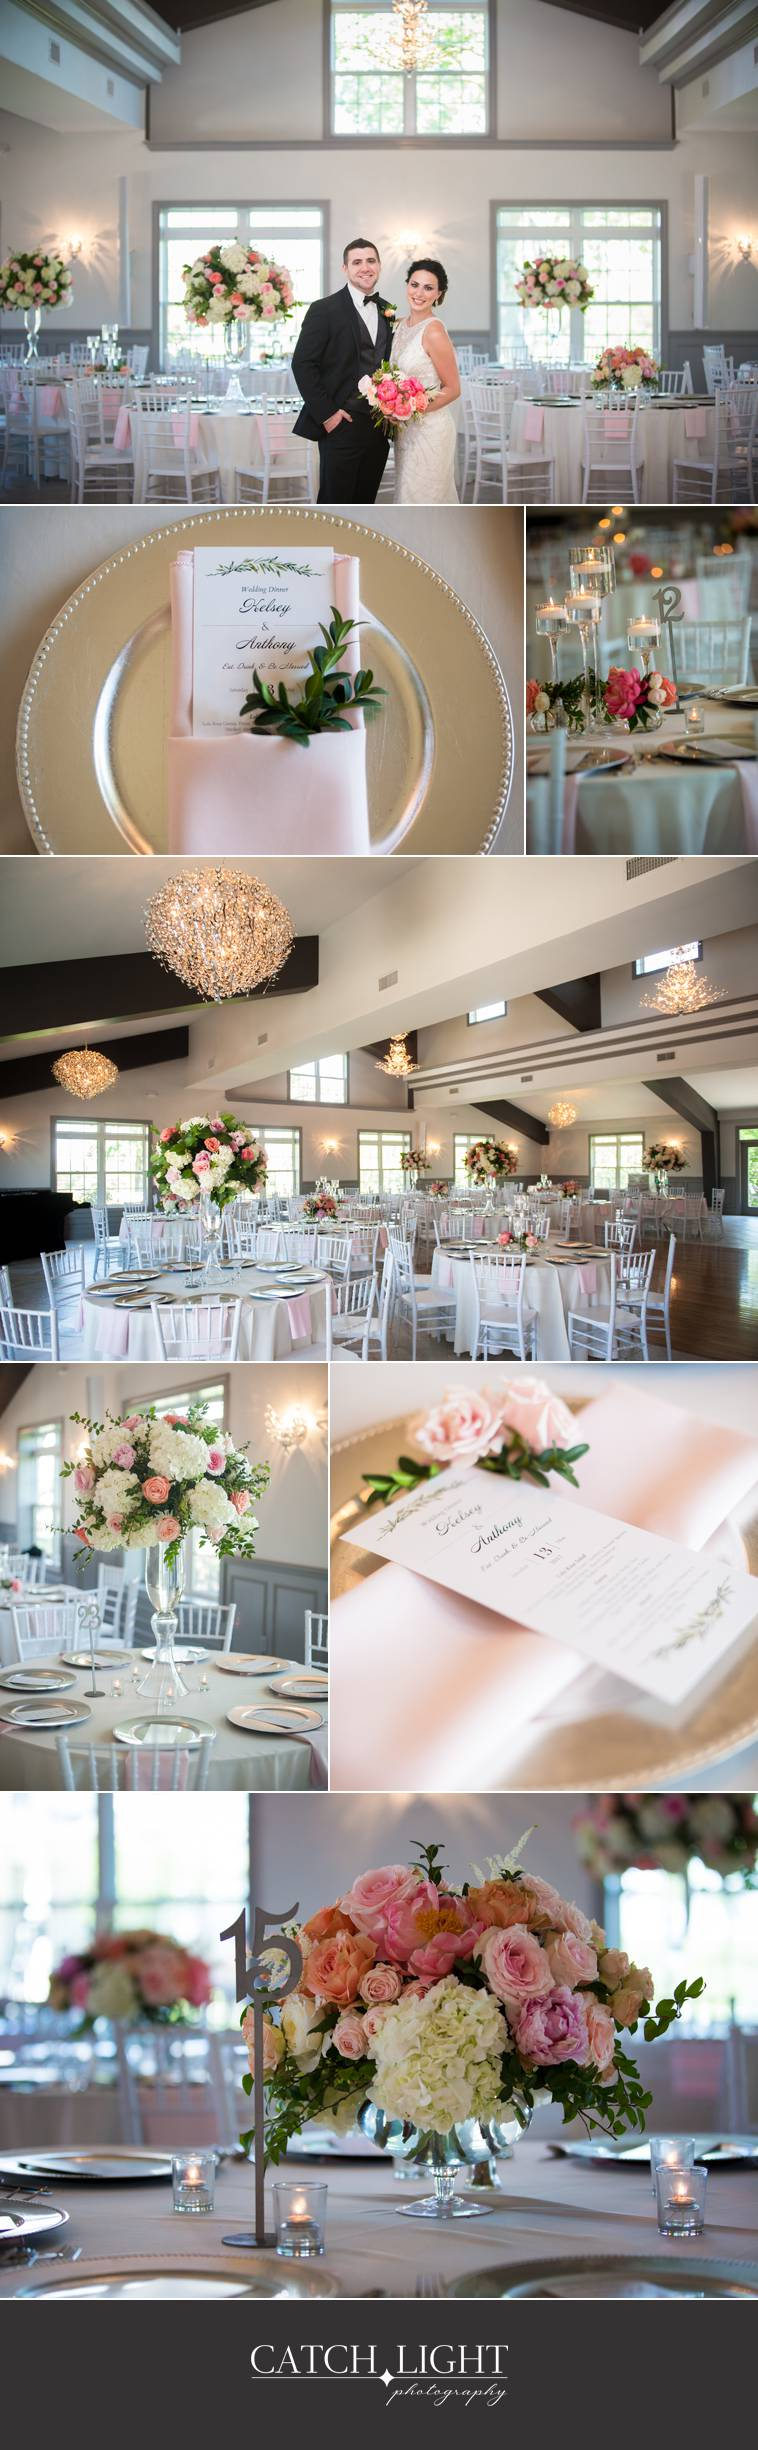 Wedding reception details at 1890 Event Space